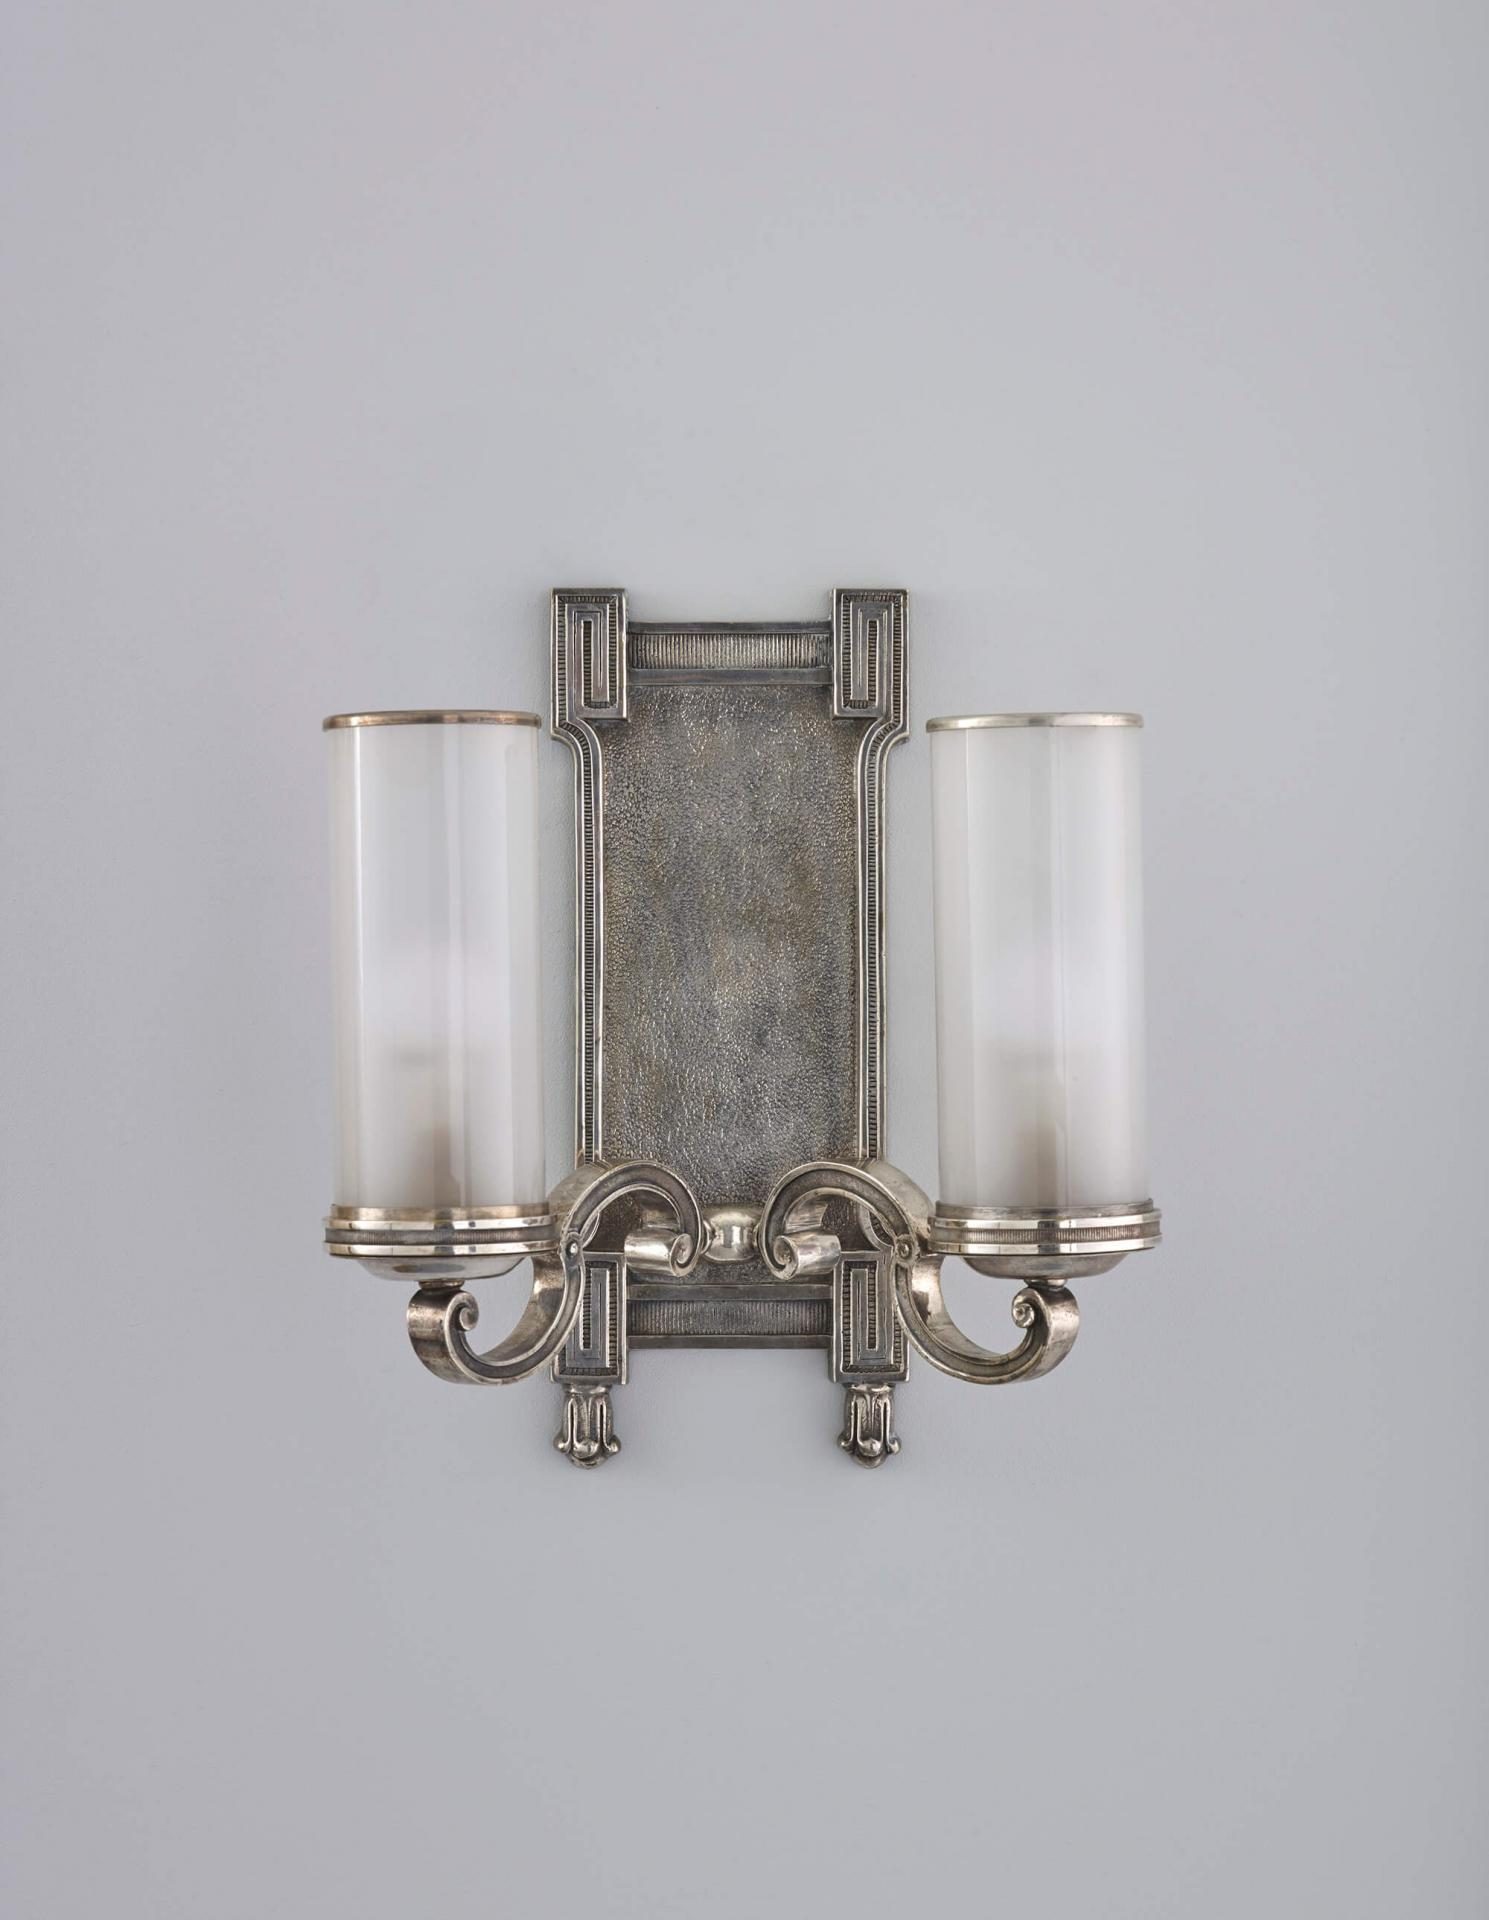 Antique reproduction twin arm wall sconce